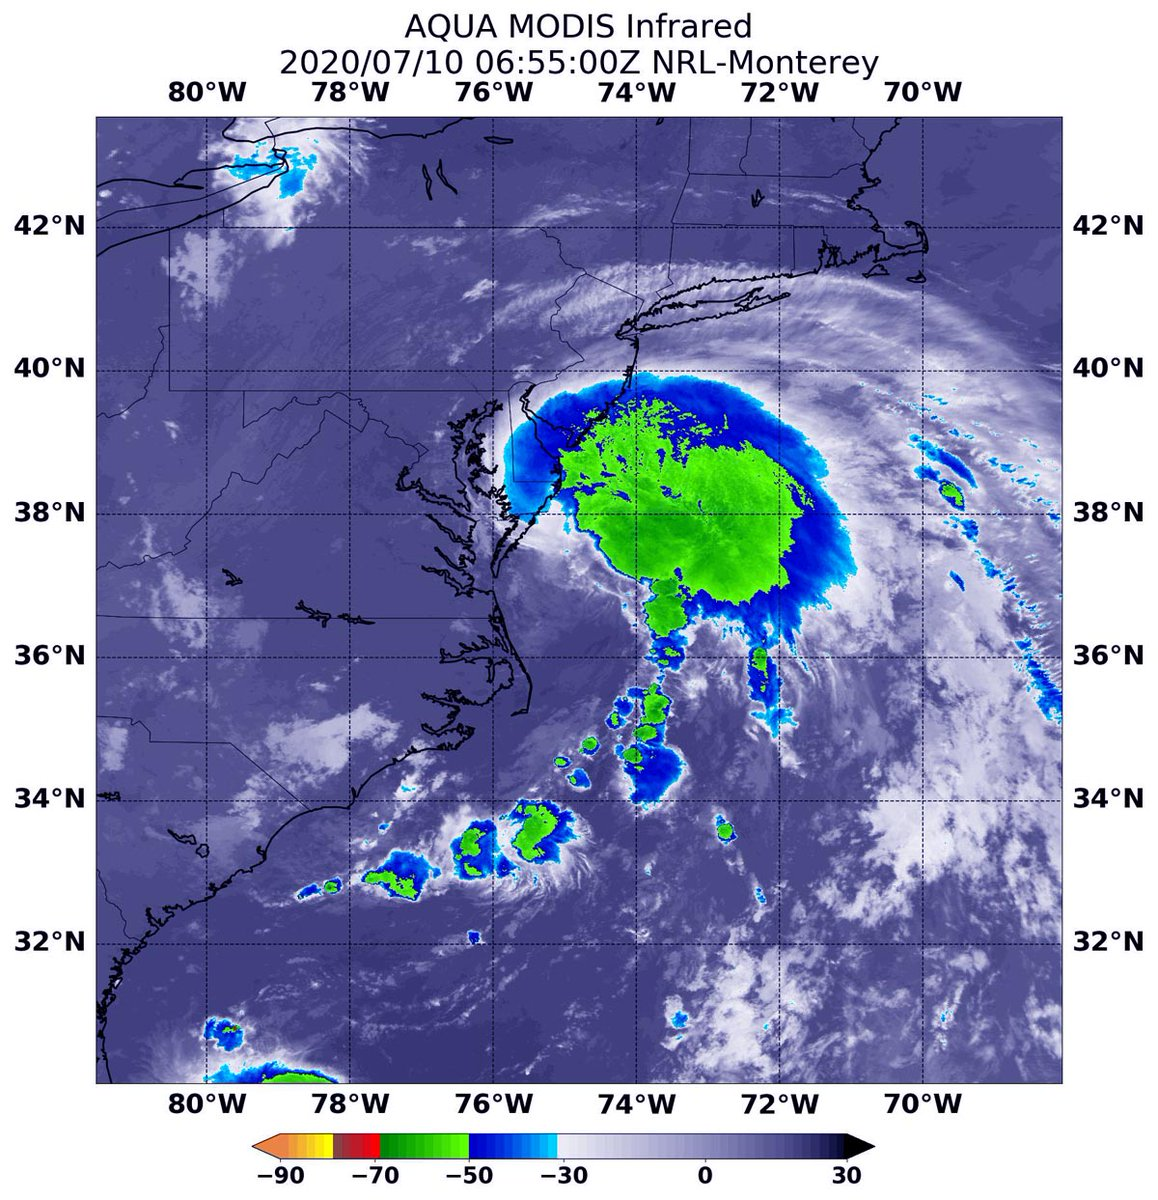 NASA Tracks Tropical Storm #Fay Fay's Development and Strongest Side NASA used satellite data to create an animation of Fay's development and progression over the past few days, showing how the storm organized into a tropical storm.  https://blogs.nasa.gov/hurricanes/tag/fay-2020/ …pic.twitter.com/r5KukQksRv